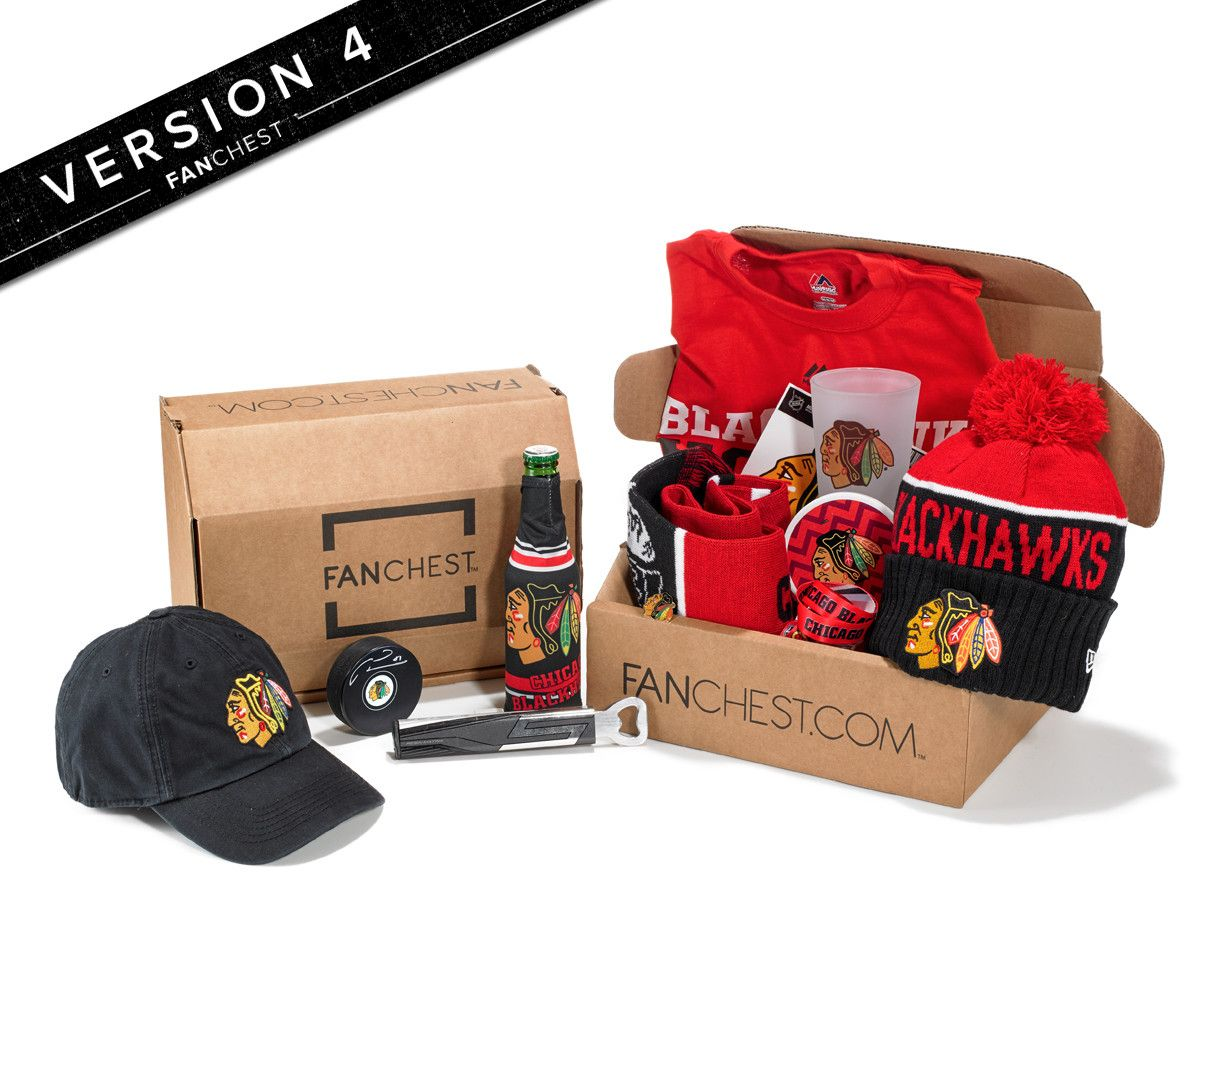 low priced 2e18a 7c6c9 Chicago Blackhawks | Chicago Blackhawks Gift Ideas | Chicago ...